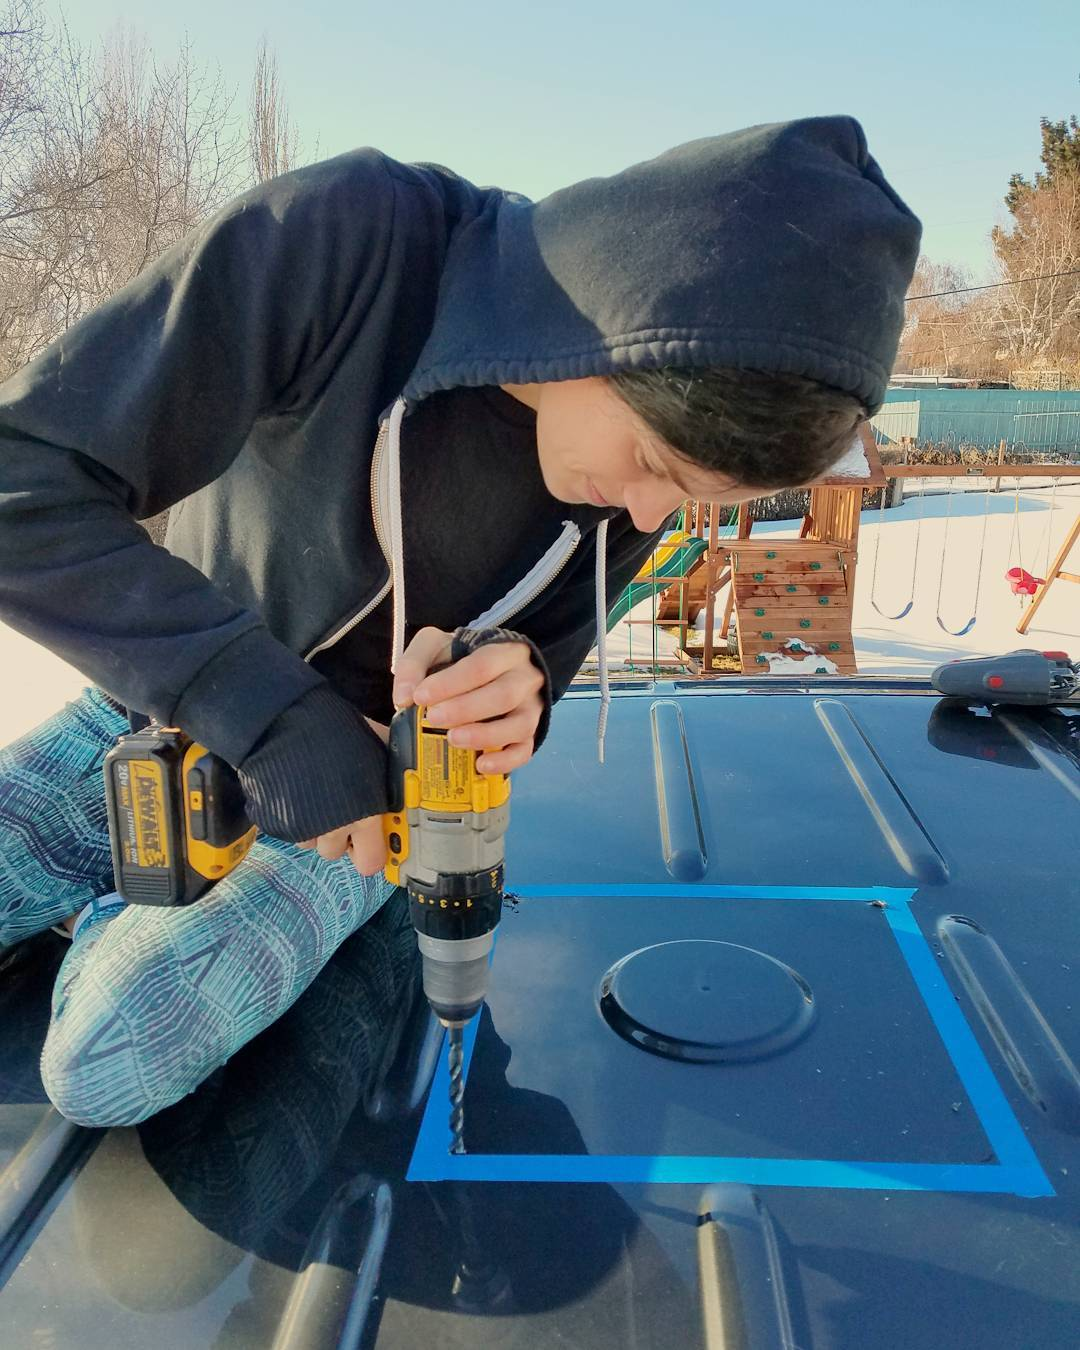 drilling holes in the roof of a campervan